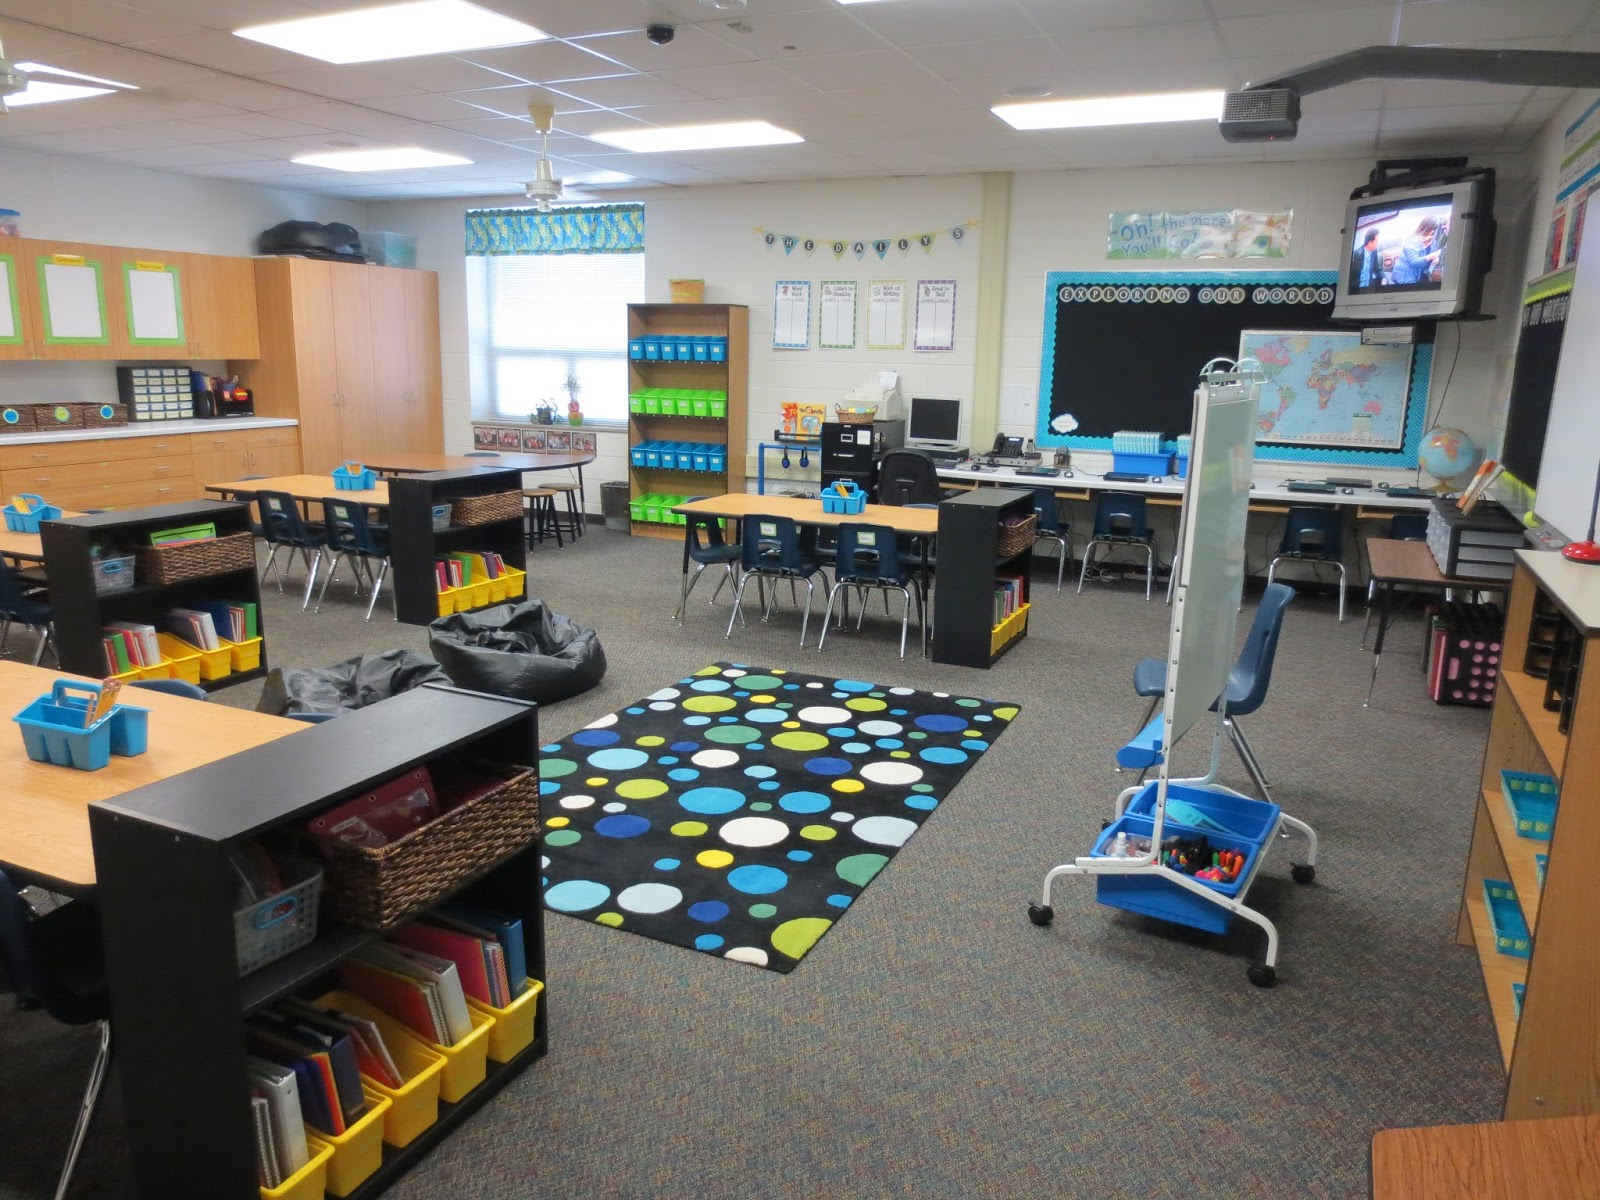 Classroom Setup And Design ~ Setting up for second classroom reveal